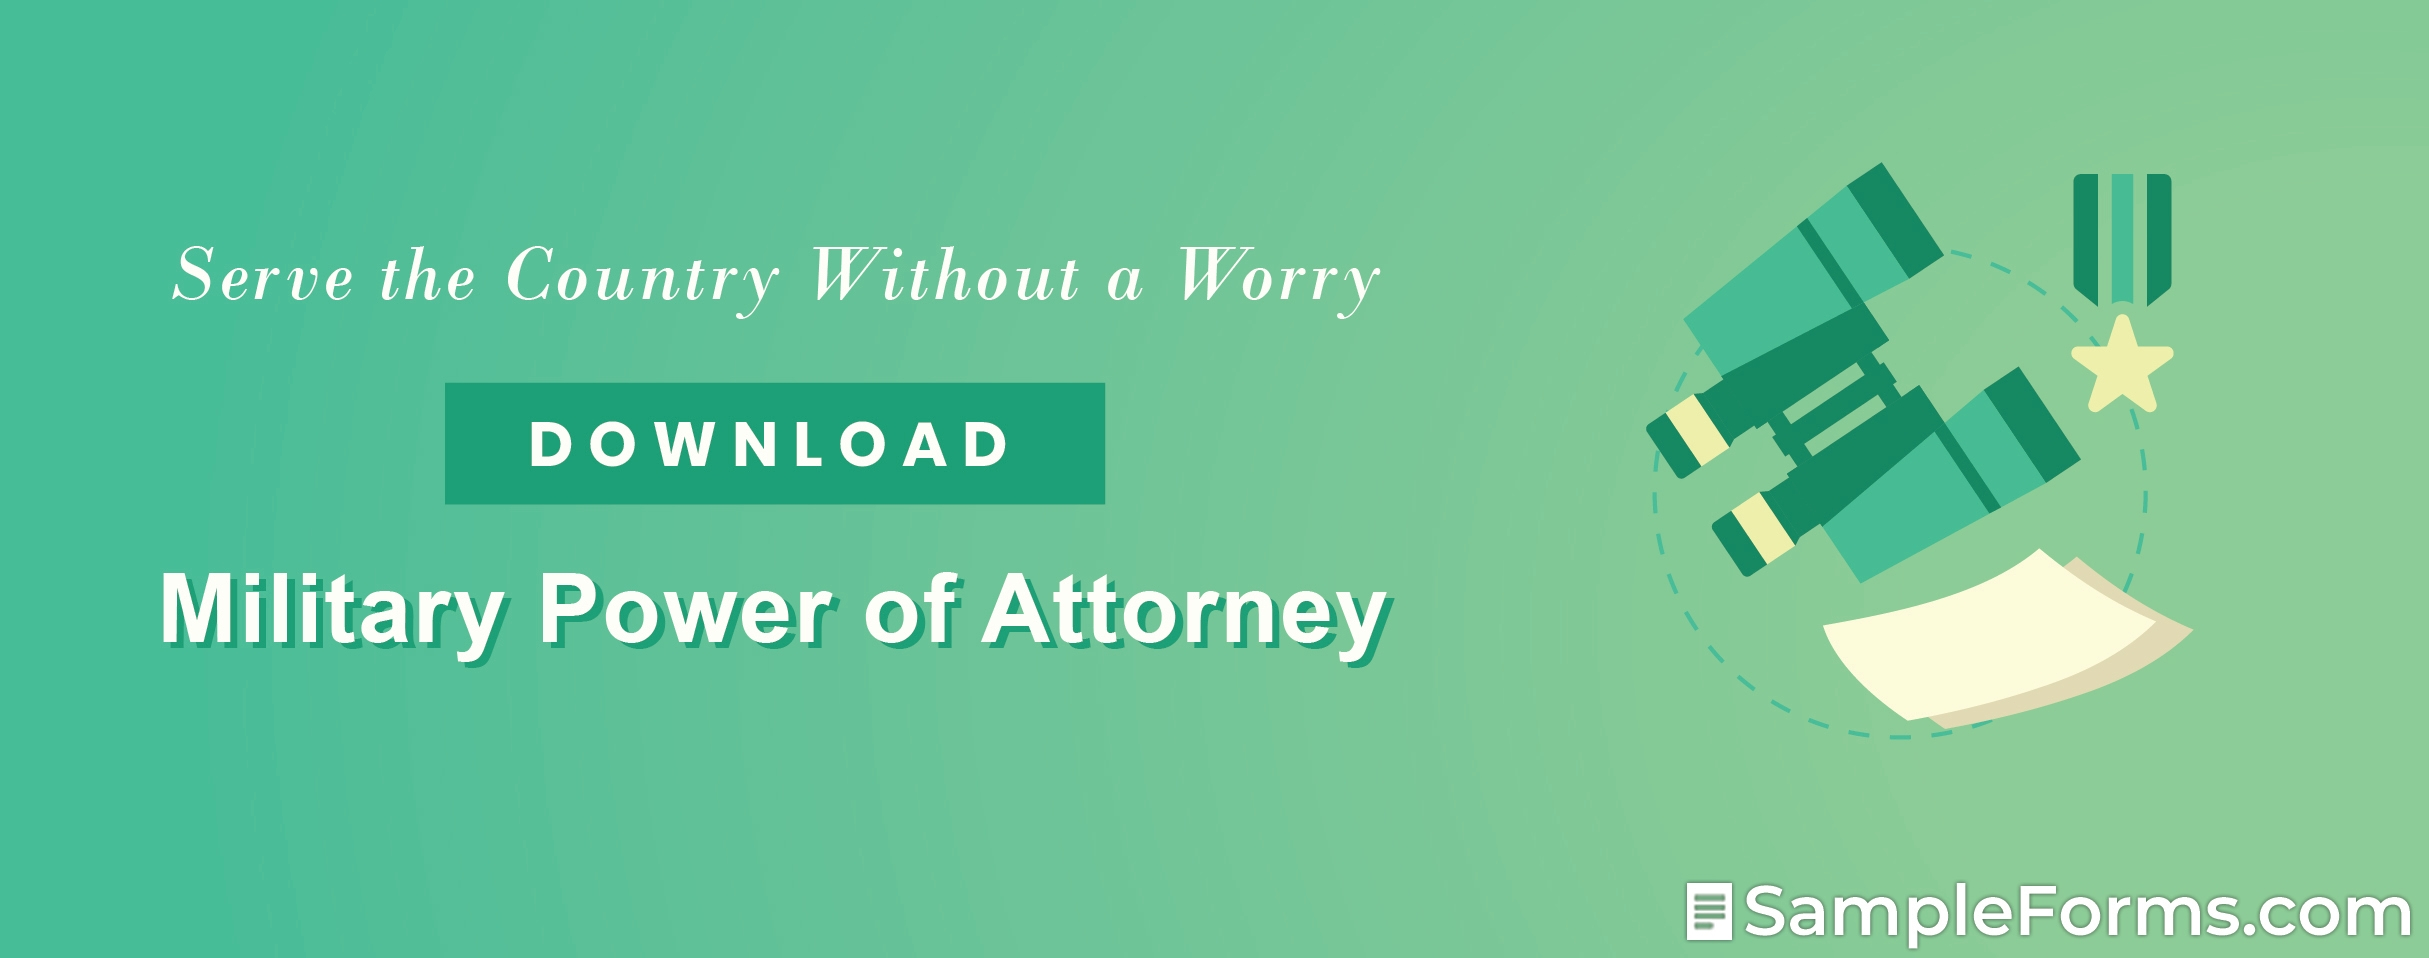 Military Power of Attorney